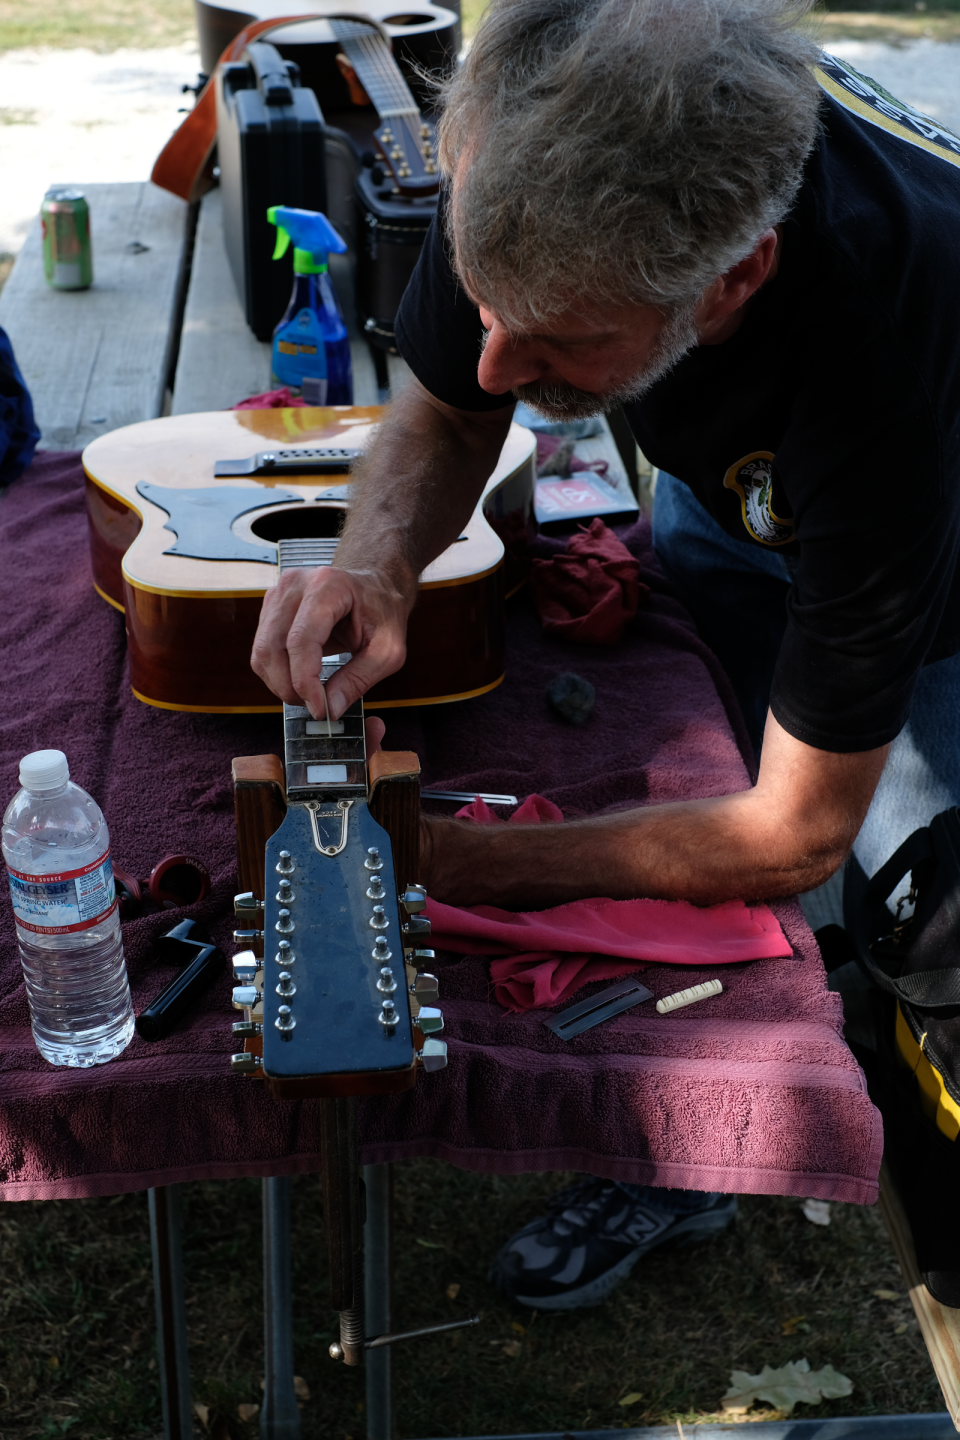 Don Penniman works the guitar setup bench, Saturday afternoon at the Depot.